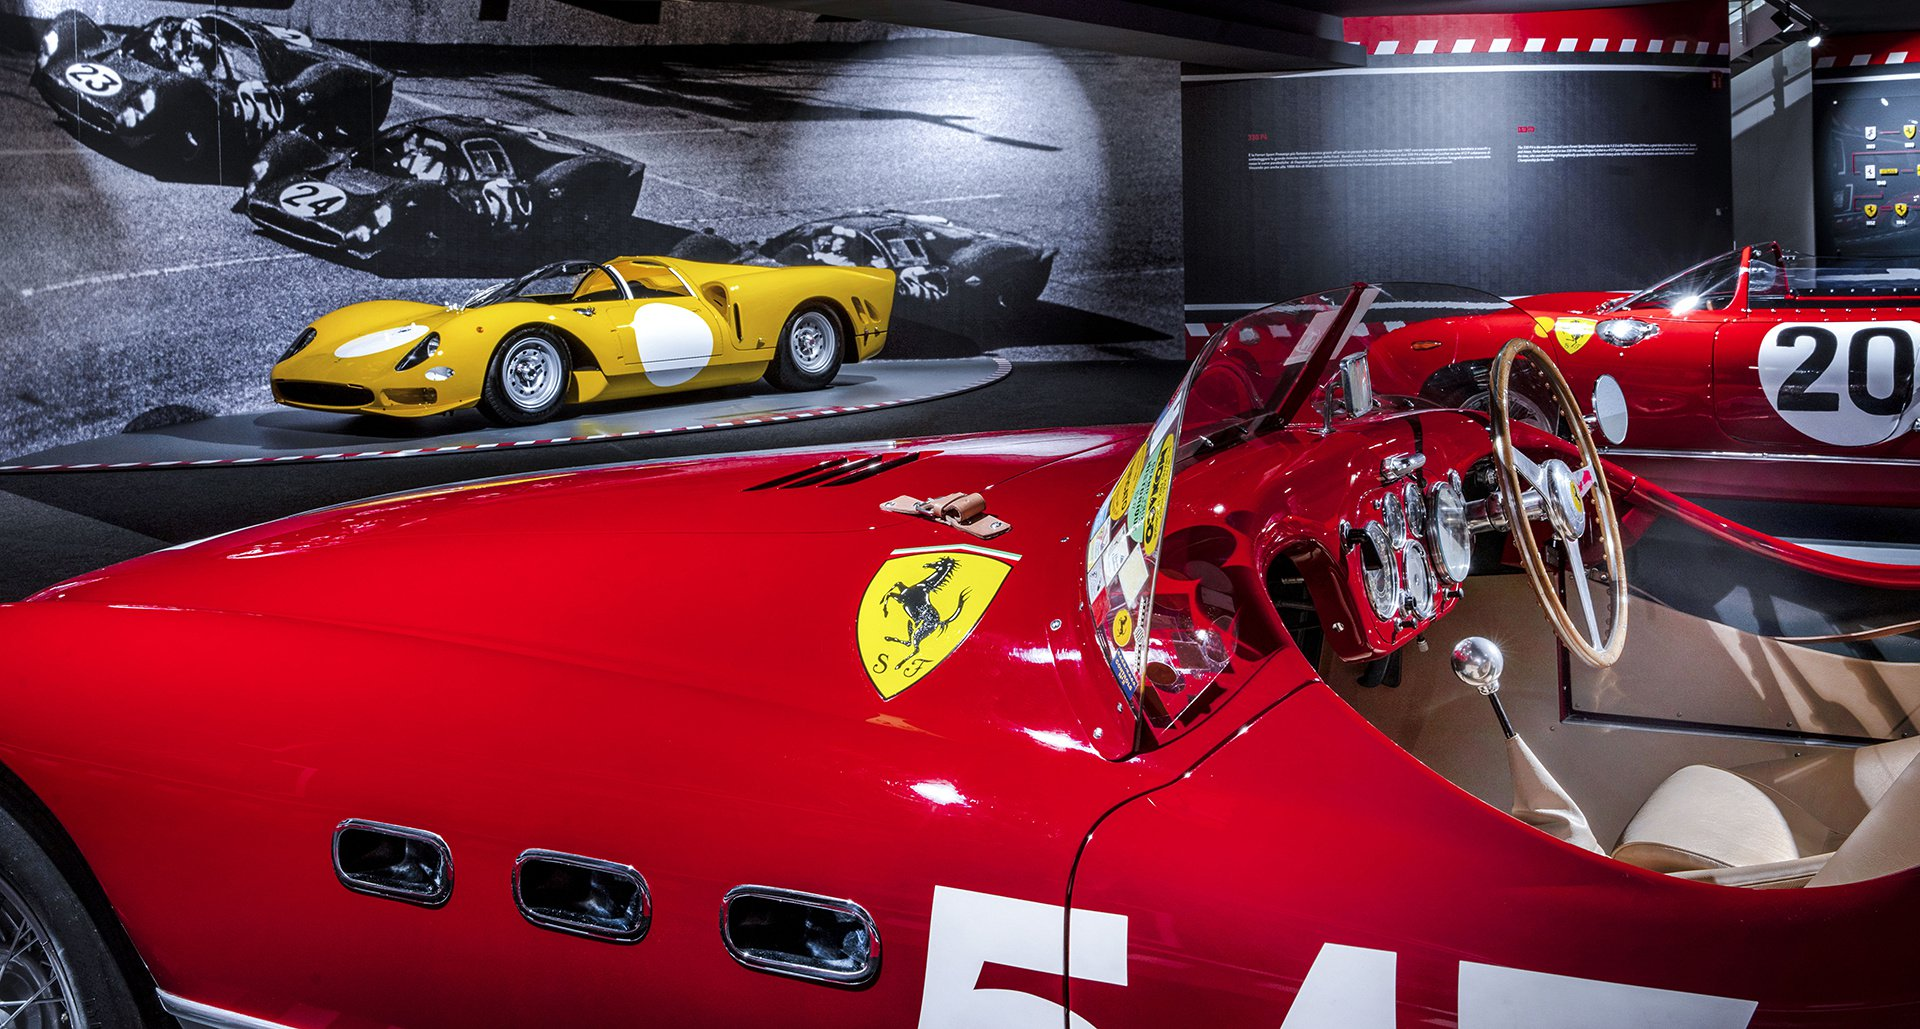 Ferrari-90-Years-Of-Racing-Special-Exhibition-7